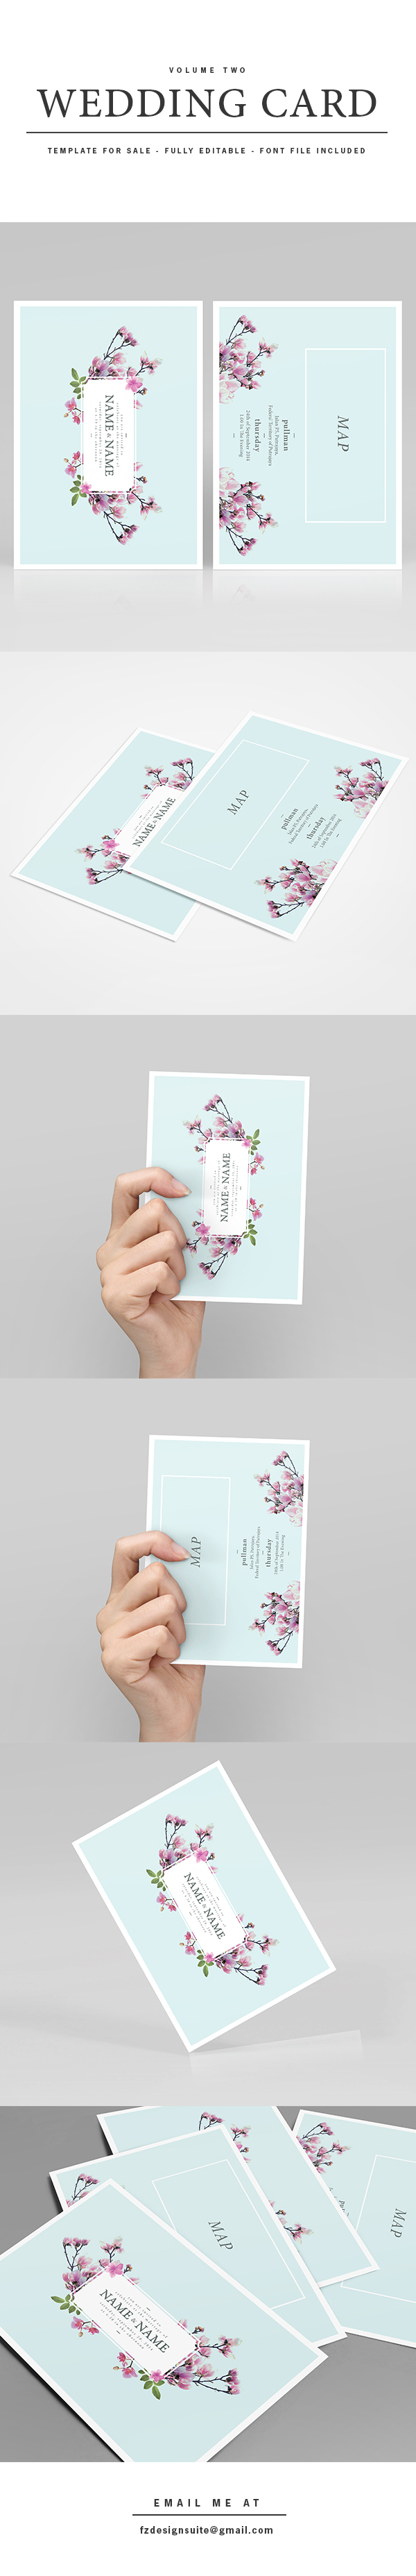 For sale wedding invitation template volume 2 on behance for Wedding invitation template for sale